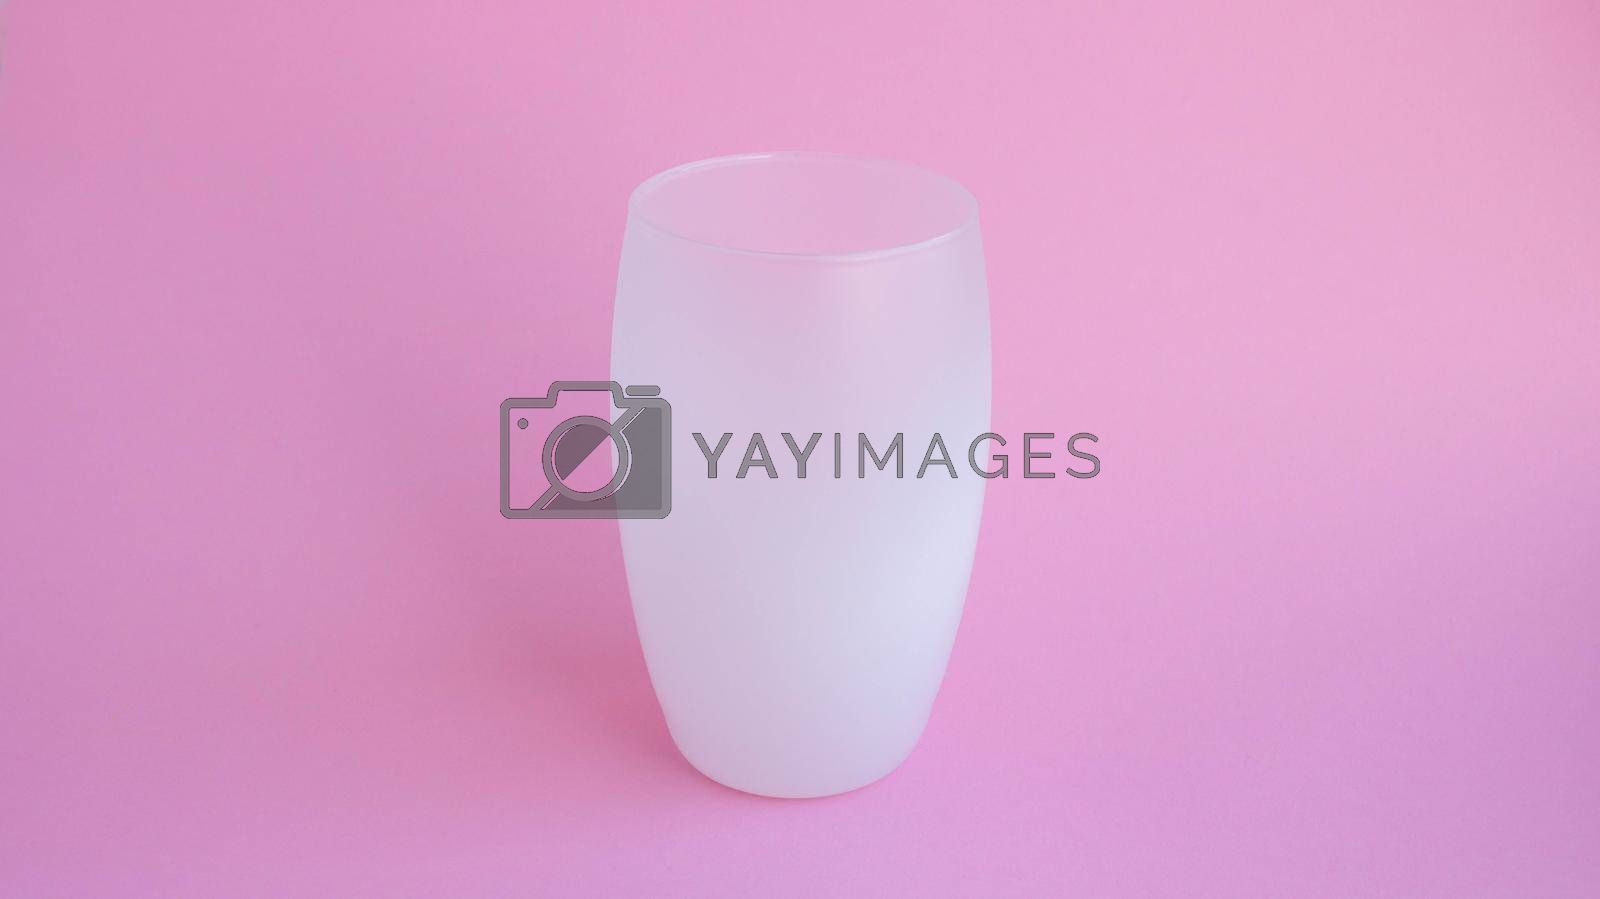 A white frosted drink glass stands on a pink background.